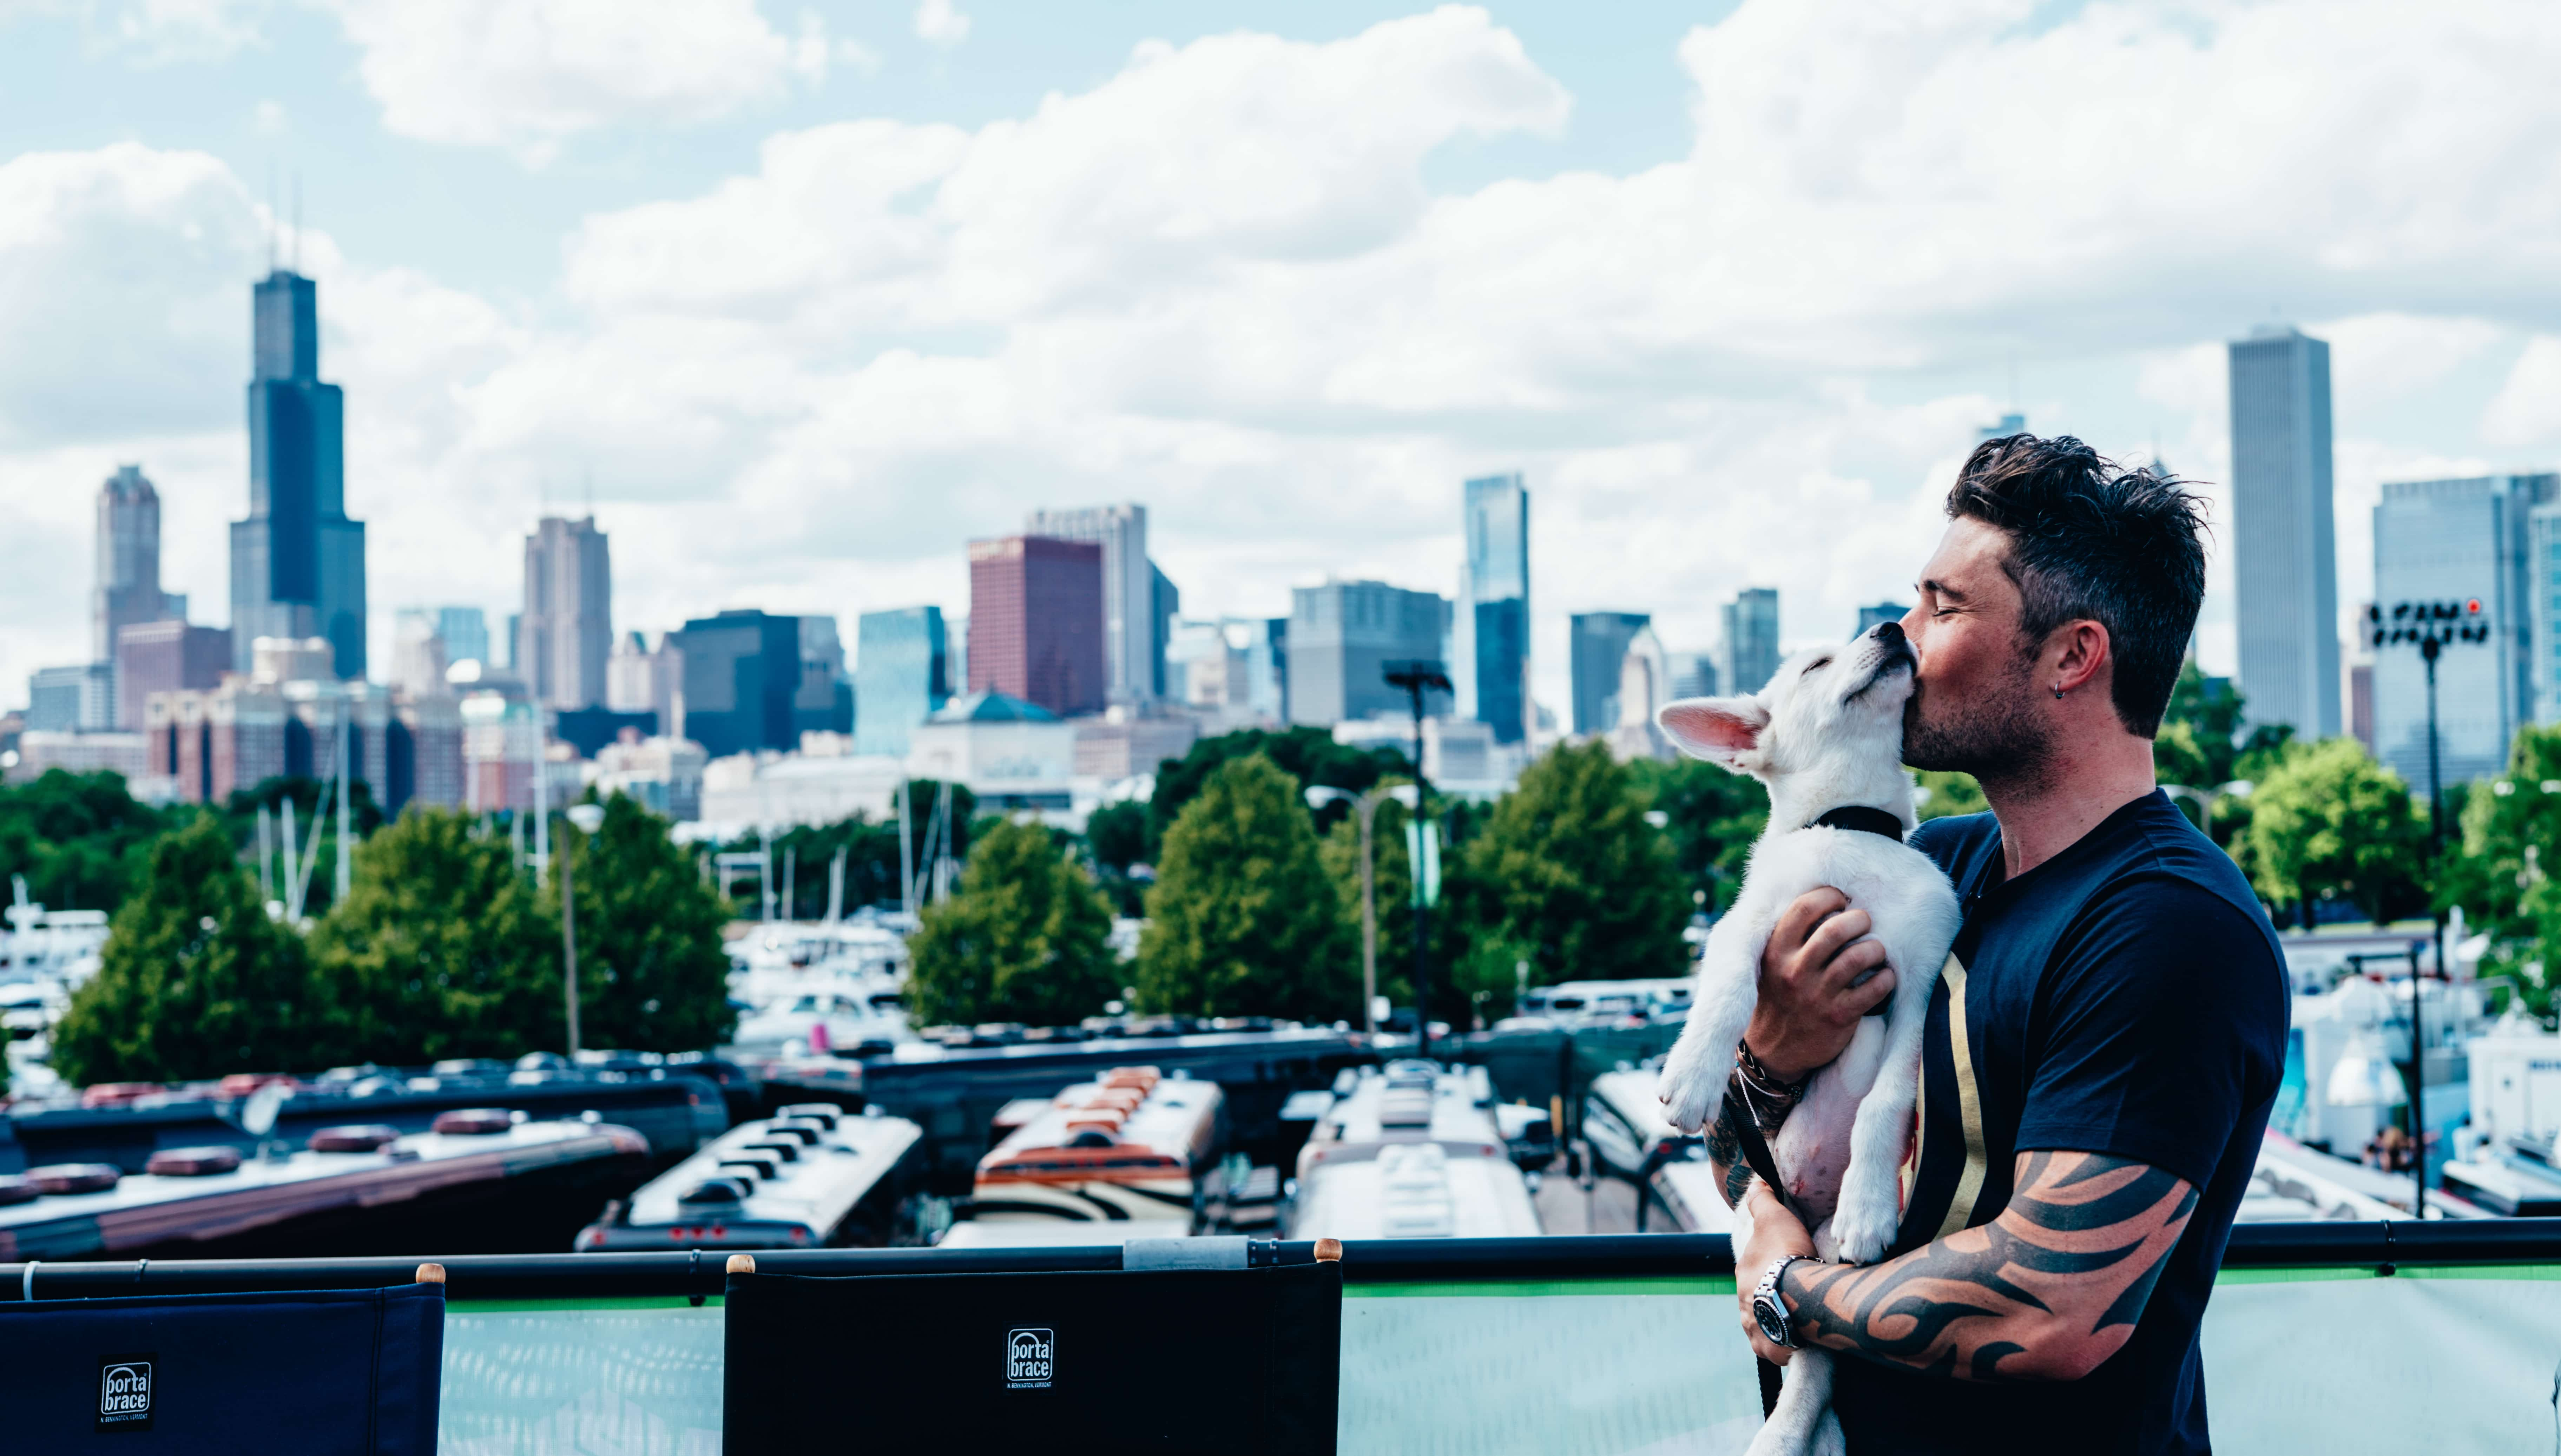 Michael Ray uses his tour to provide over 100,000 meals to animals in need